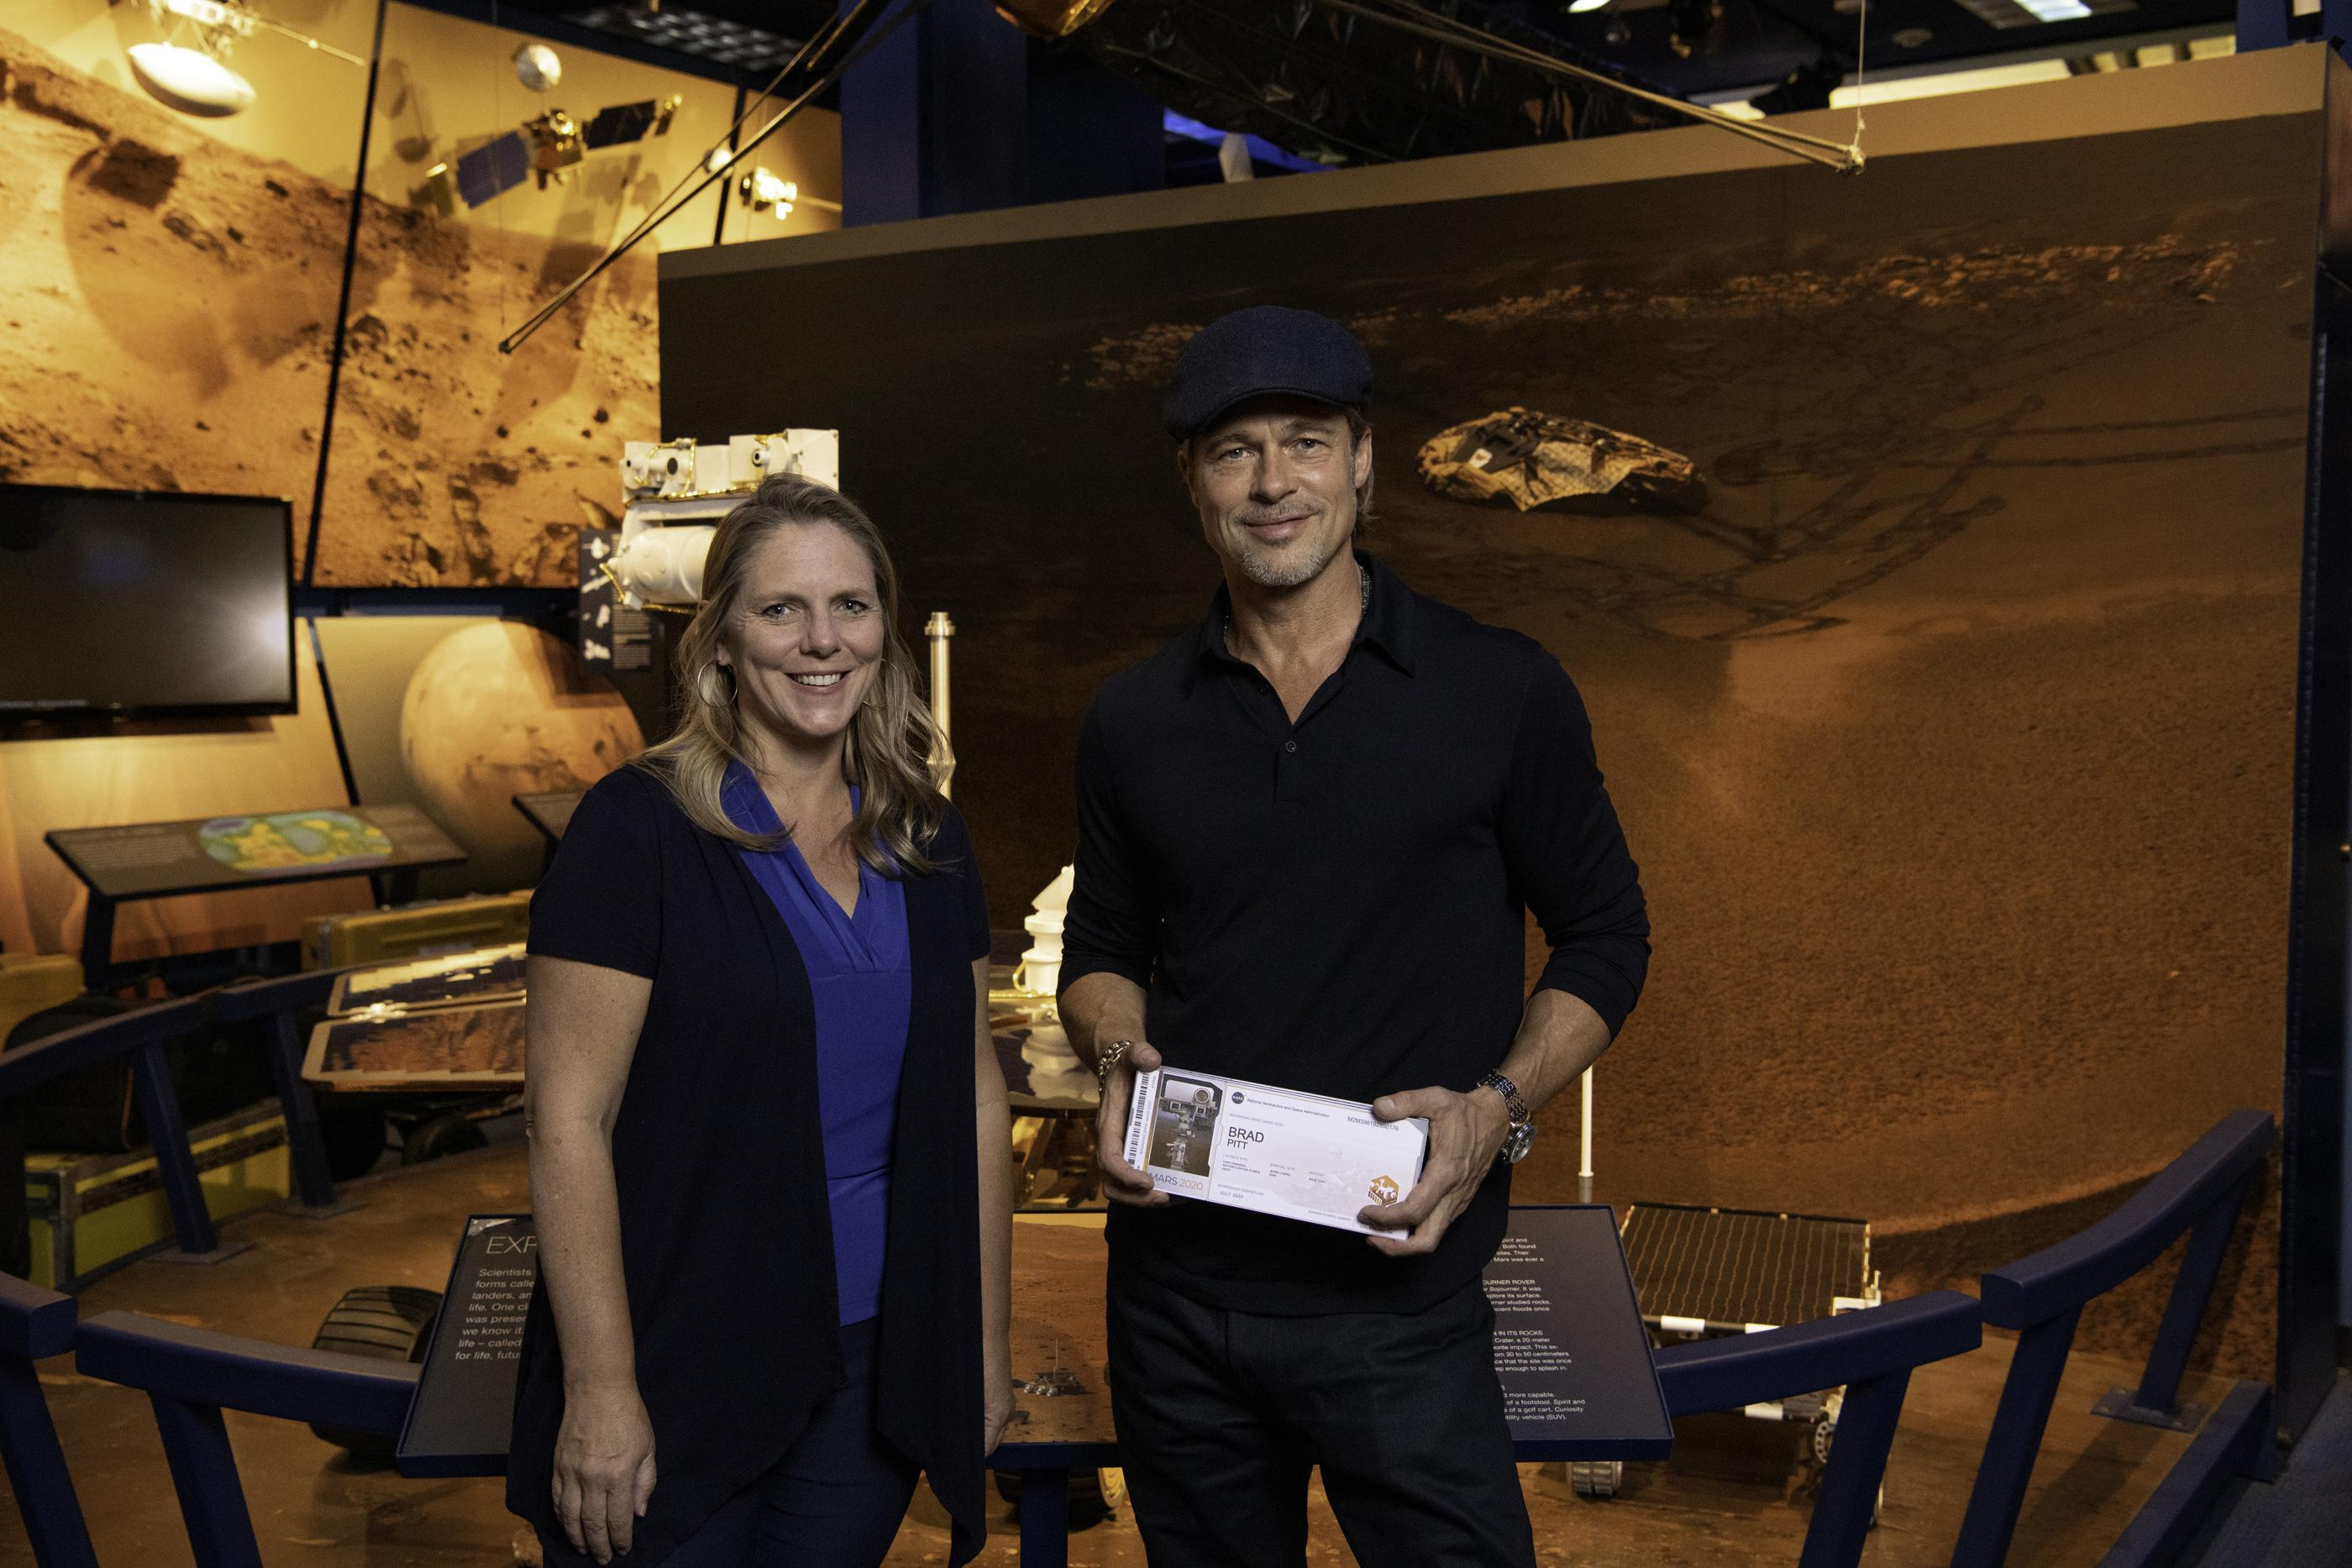 The actor Brad Pitt (right) shows off his boarding pass for Mars with Jennifer Trosper (left), the Mars 2020 project systems engineer, at JPL on Sept. 6, 2019.